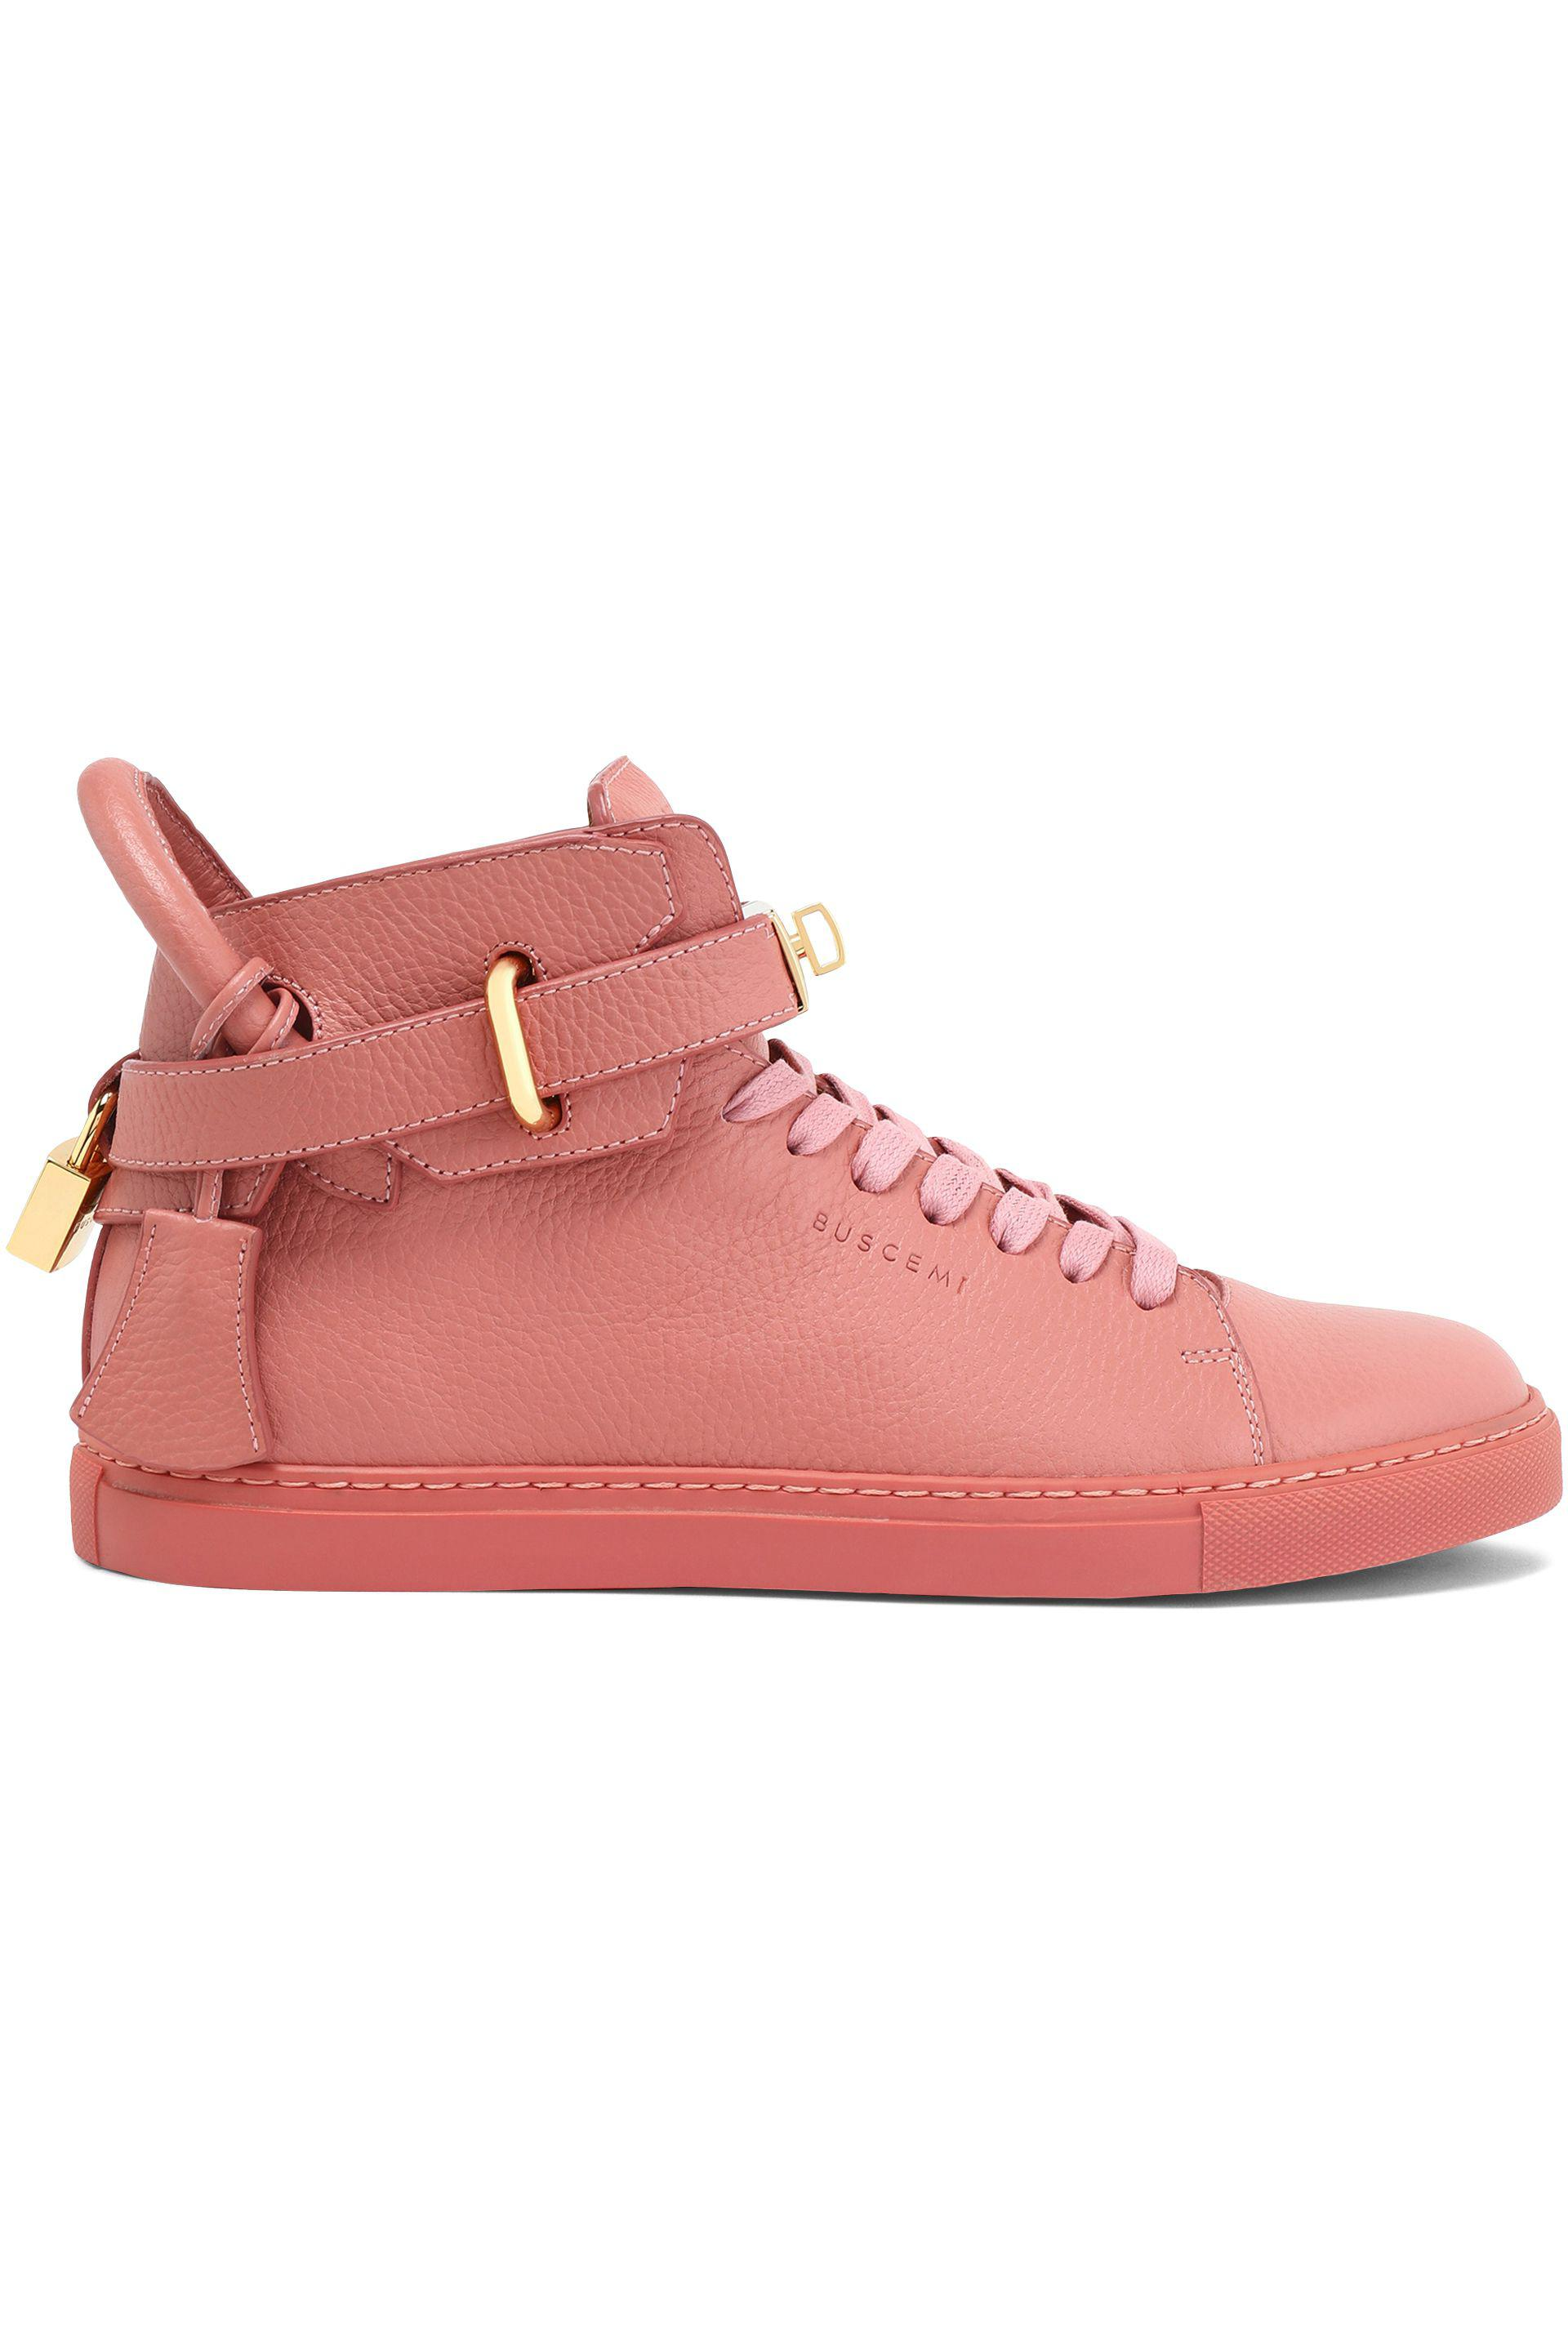 Buscemi Woman Embellished Metallic Snake-effect Leather High-top Sneakers Rose Gold Size 40 Buscemi tqqmV4x